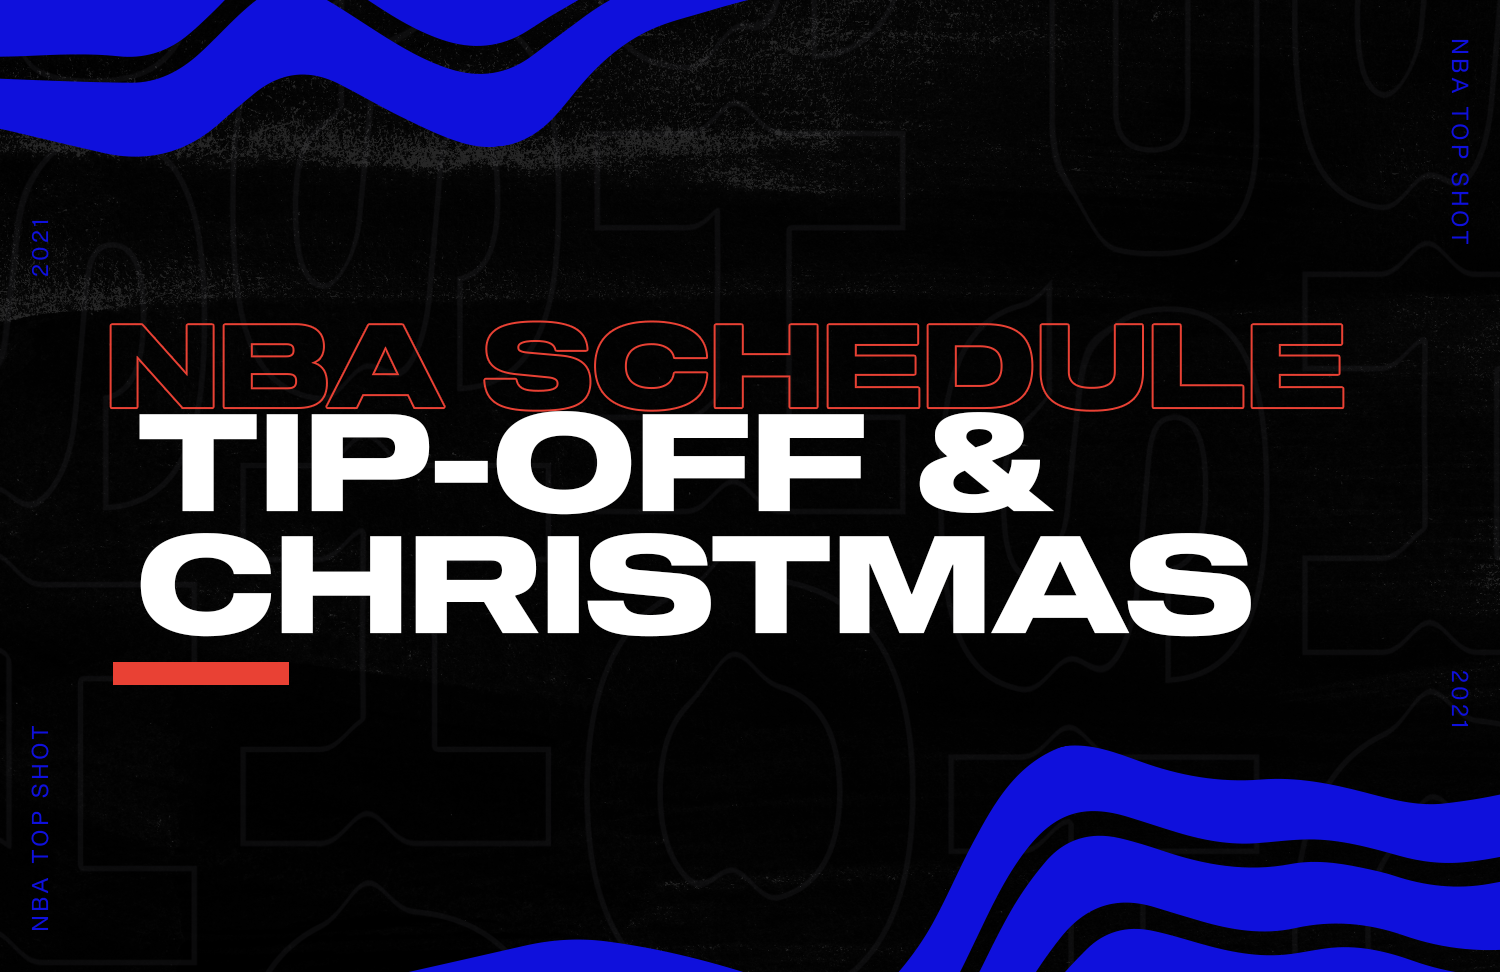 Let's take a look at Season Tip-Off and Christmas Day schedules!